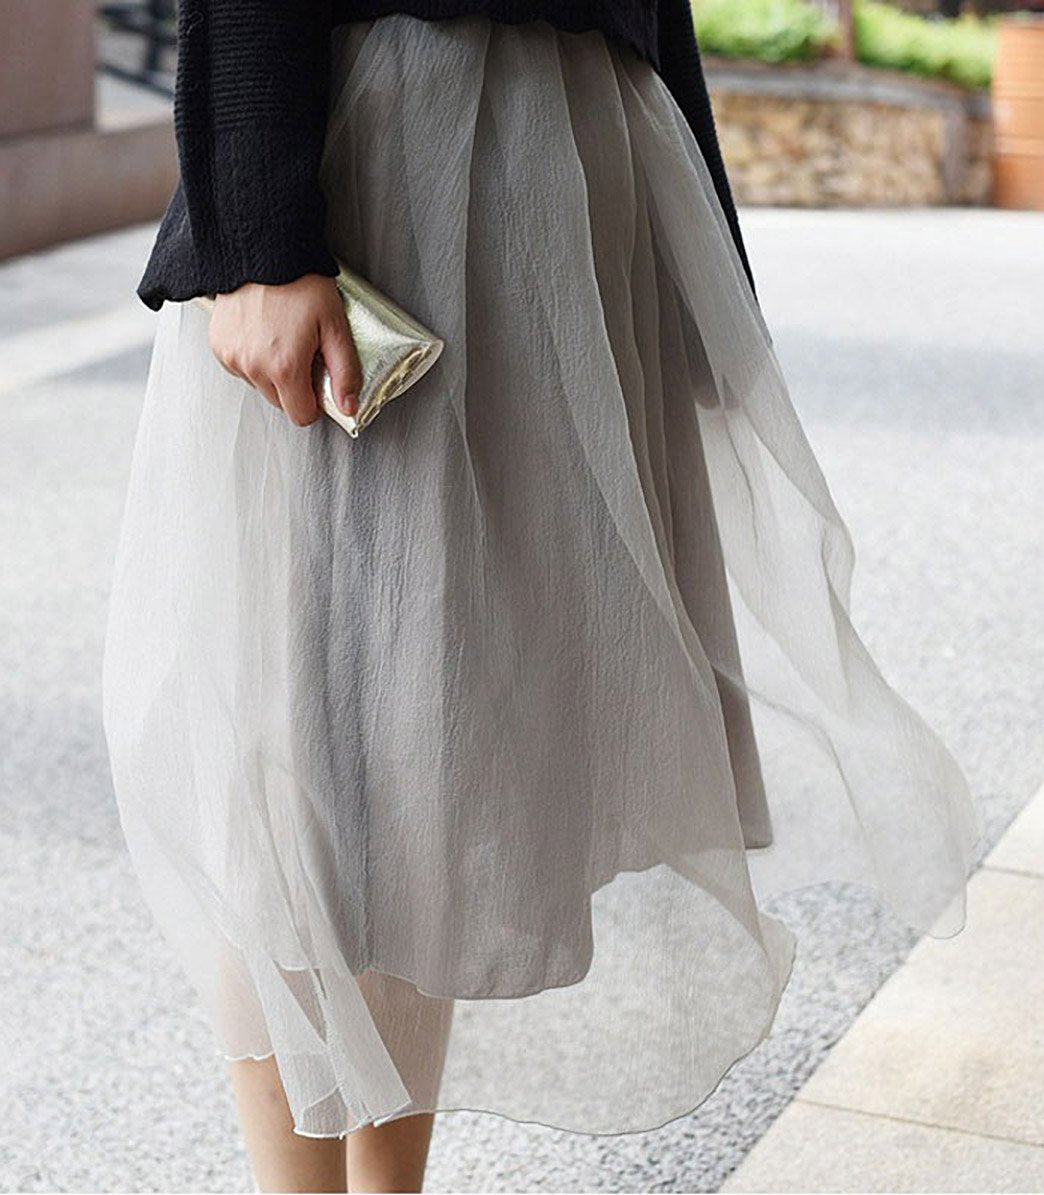 Alice Organza Overlay Midi Skirt in Grey - Lookbook Boutique